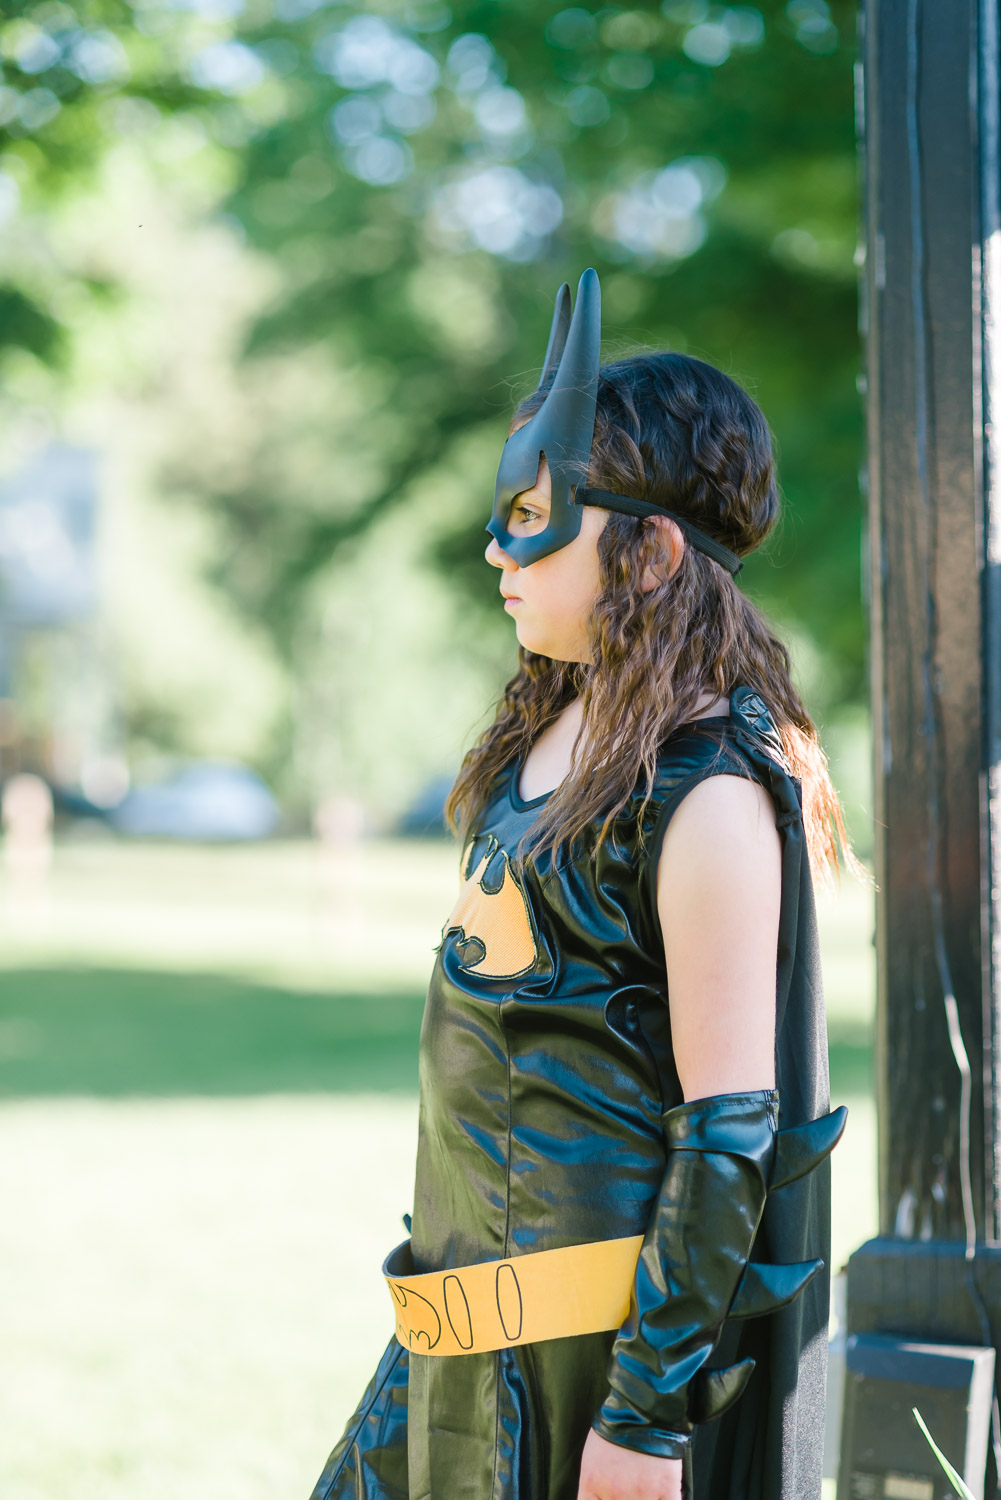 Bat girl outside under some trees looking to the side